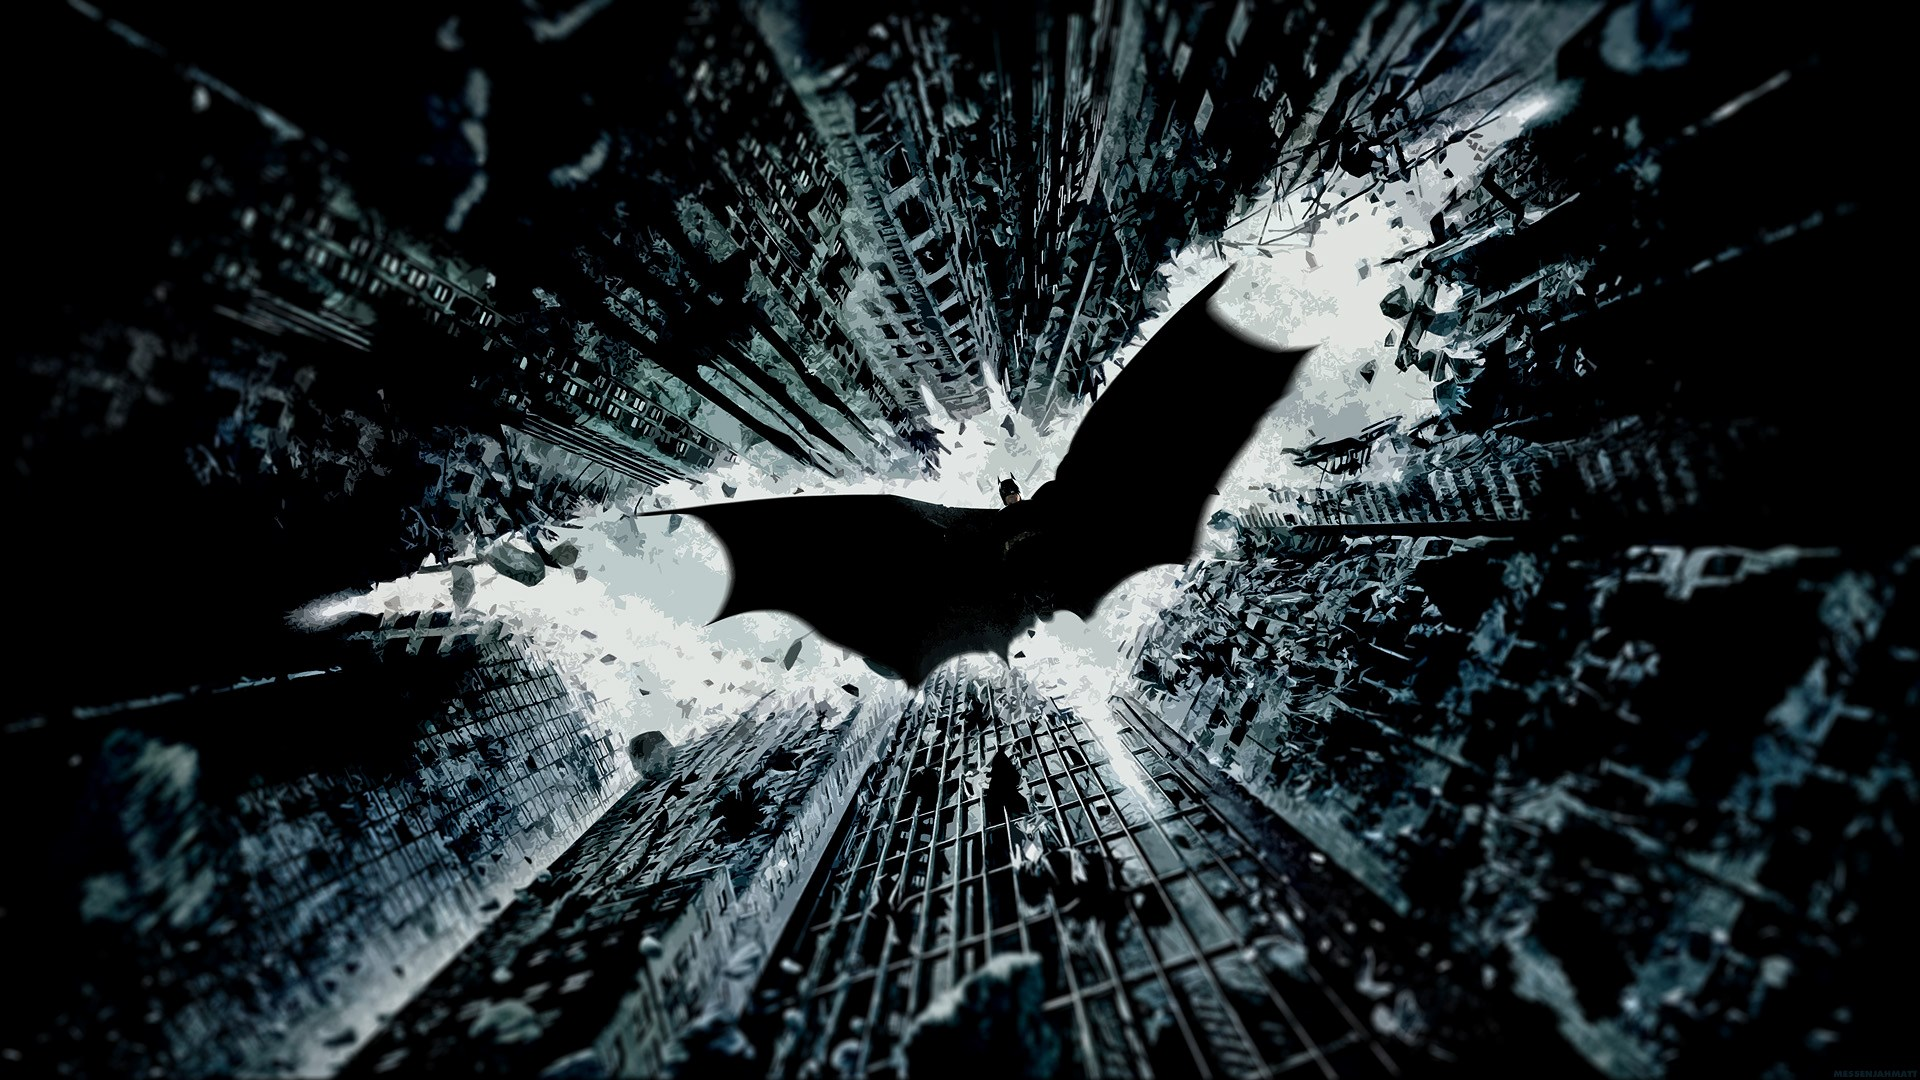 batman-backgrounds-hd-1920-x-1080-kB-wallpaper-wpc5802541